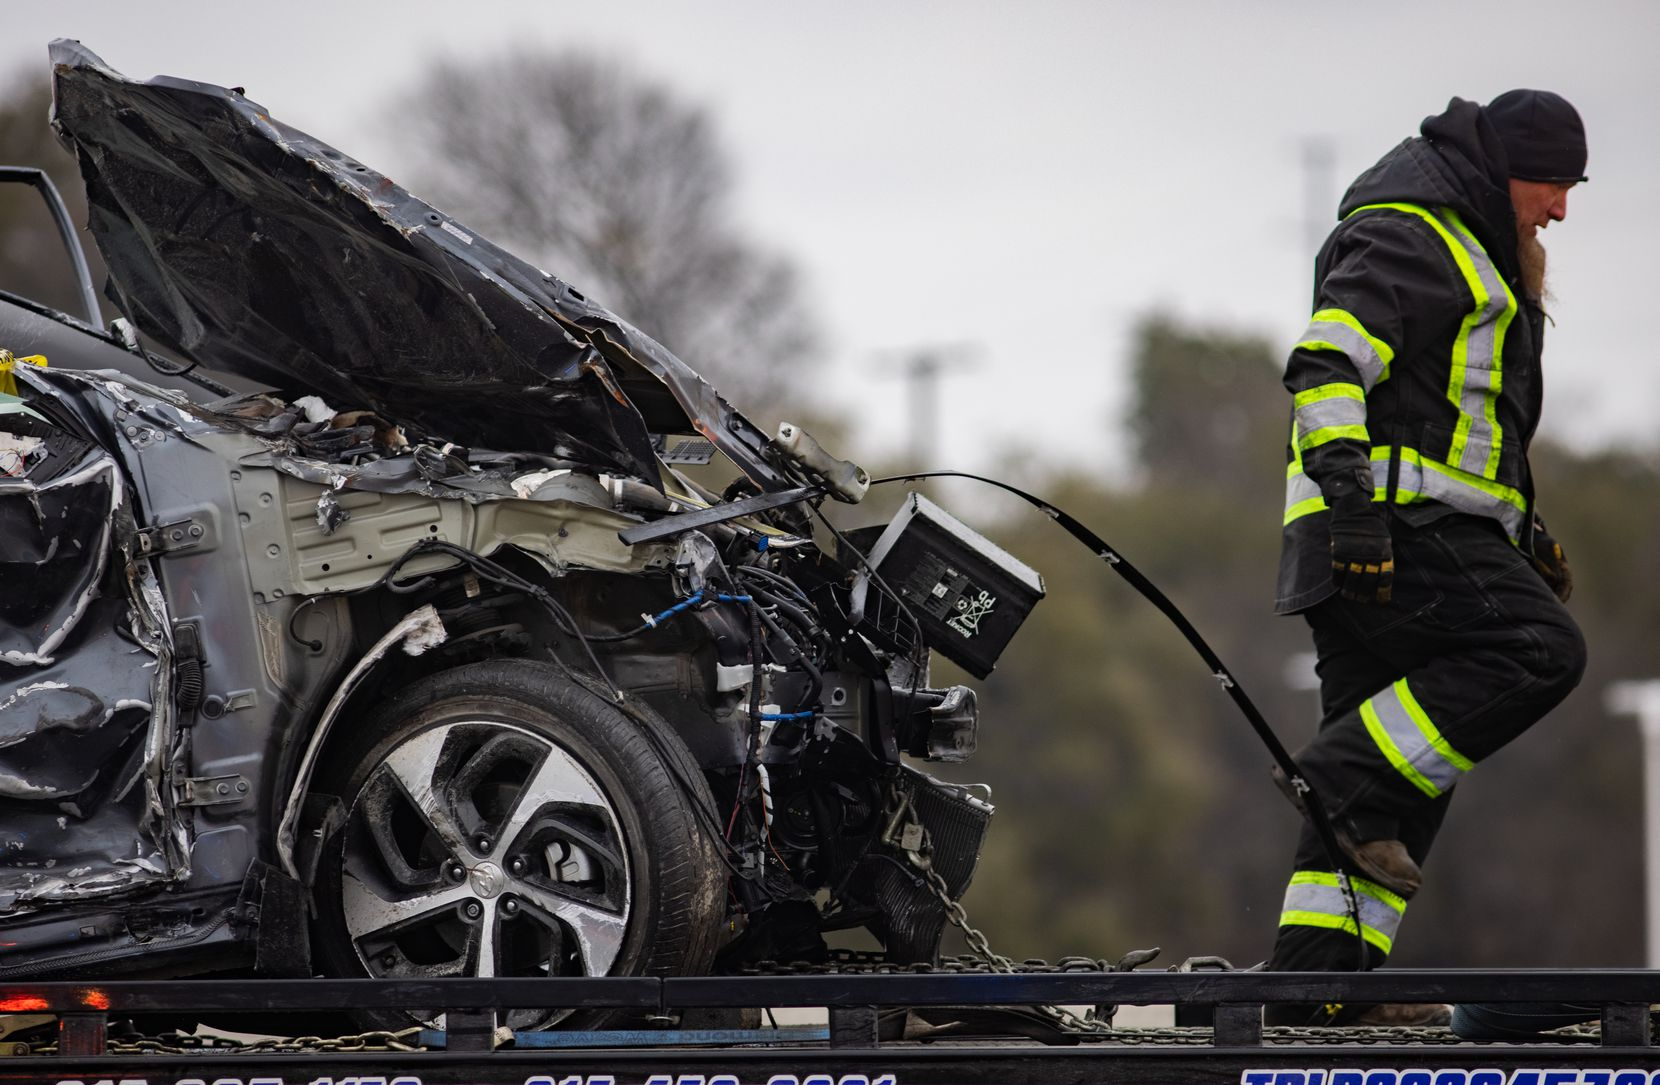 A crumbled car was towed as emergency crews worked to clear the crash on Interstate 35W in Fort Worth on Thursday.